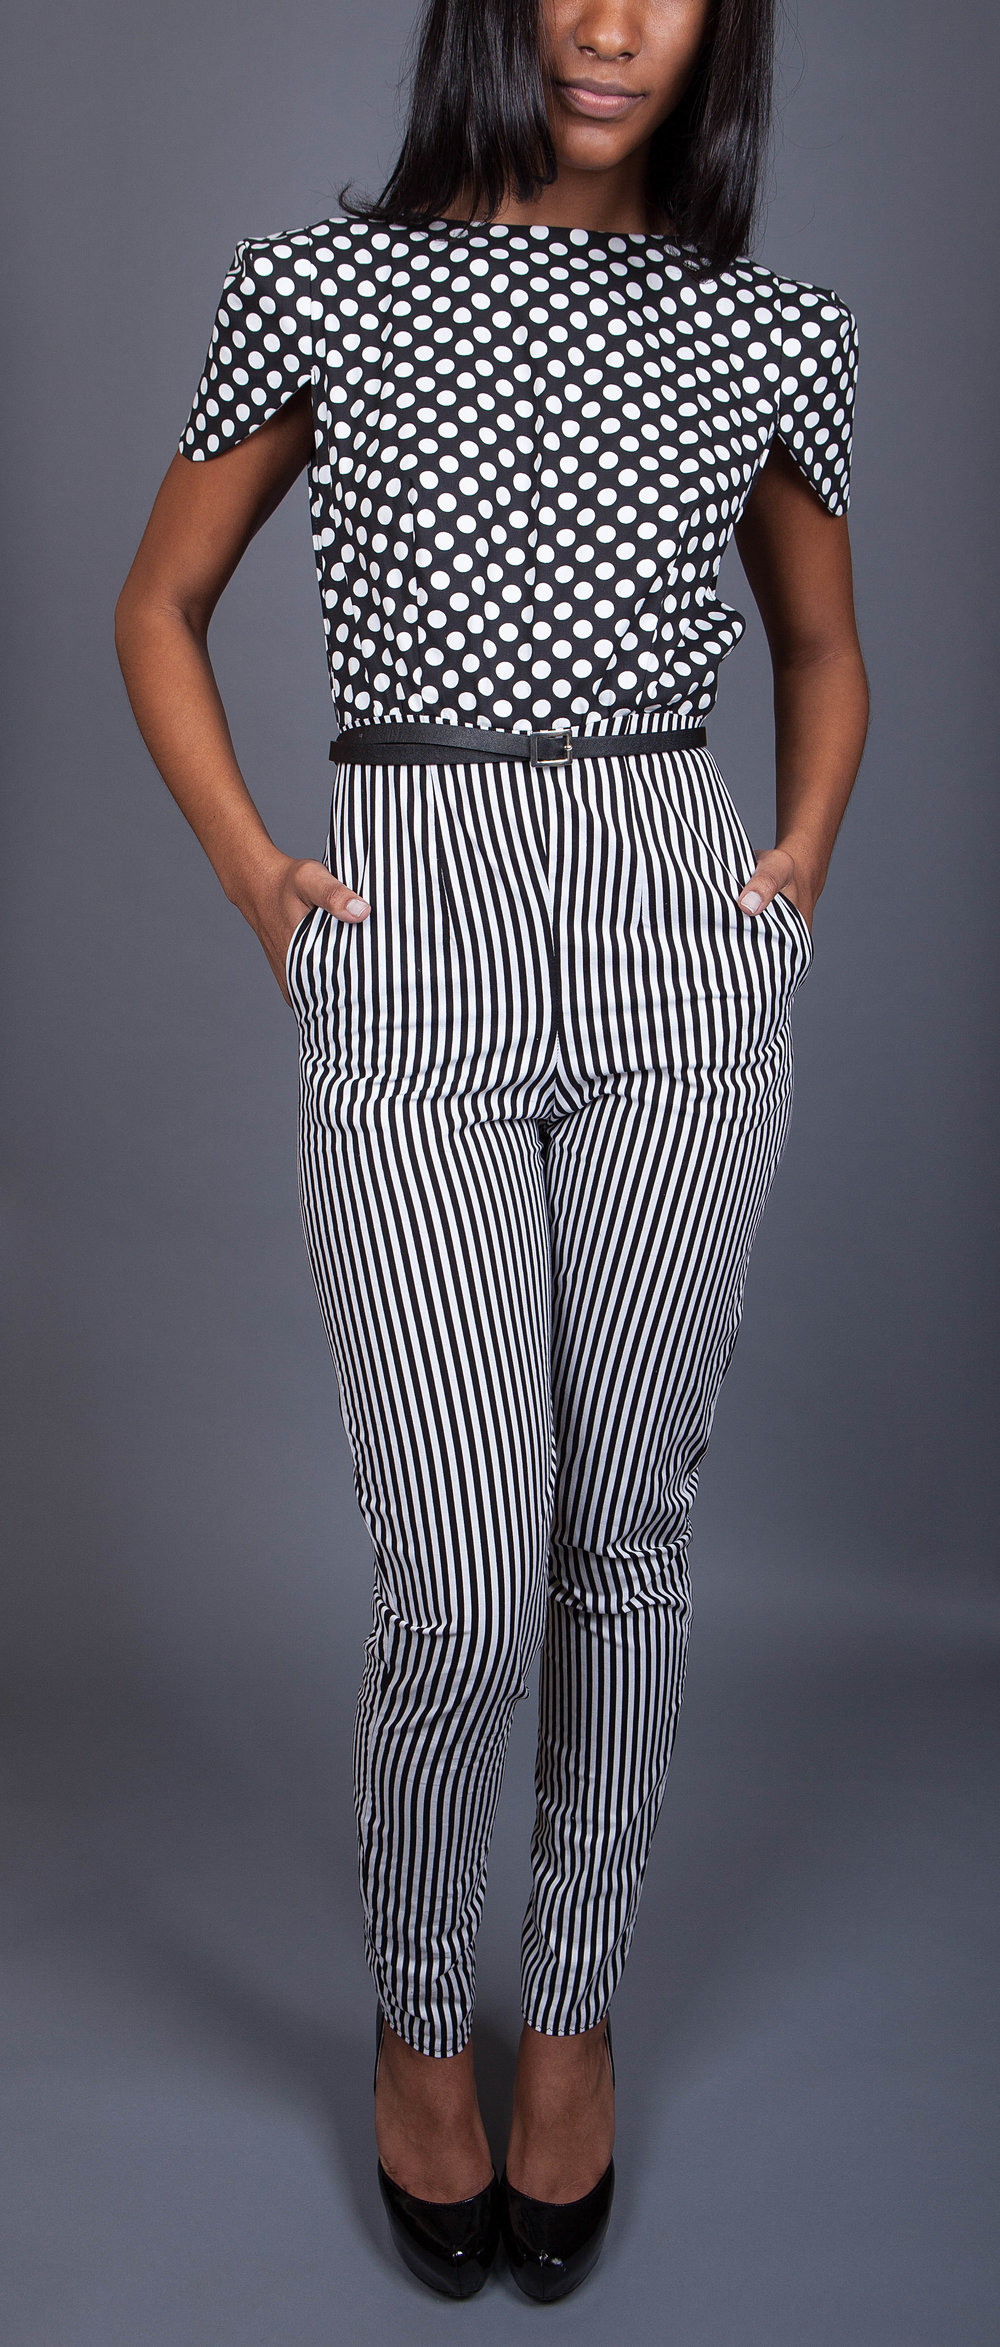 B&W Jumpsuit - Mix and match prints